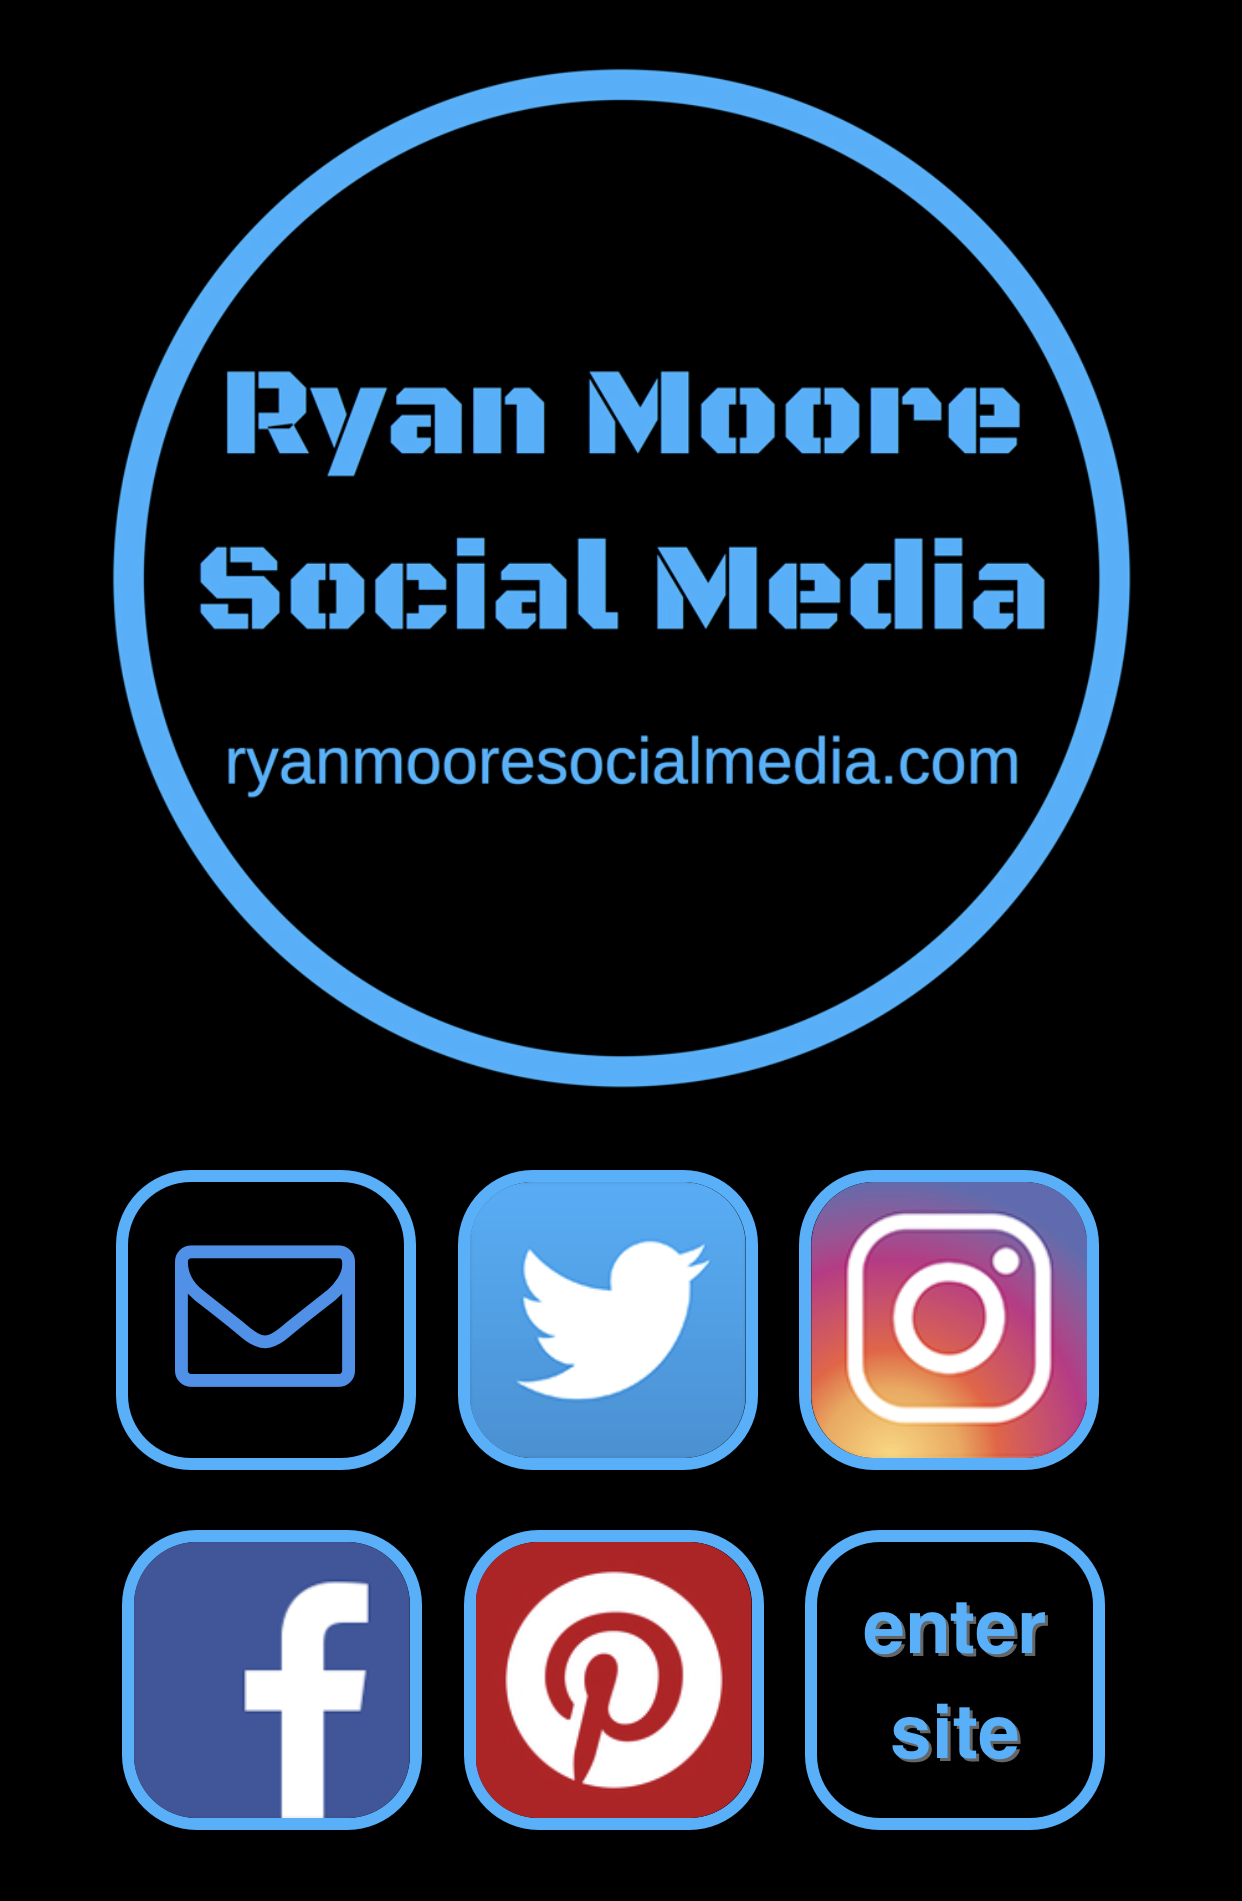 If You Need Social Media Help For A Company Organization Movie Celebrity Or Political Campai With Images Social Media Help Social Media Services Social Media Consultant